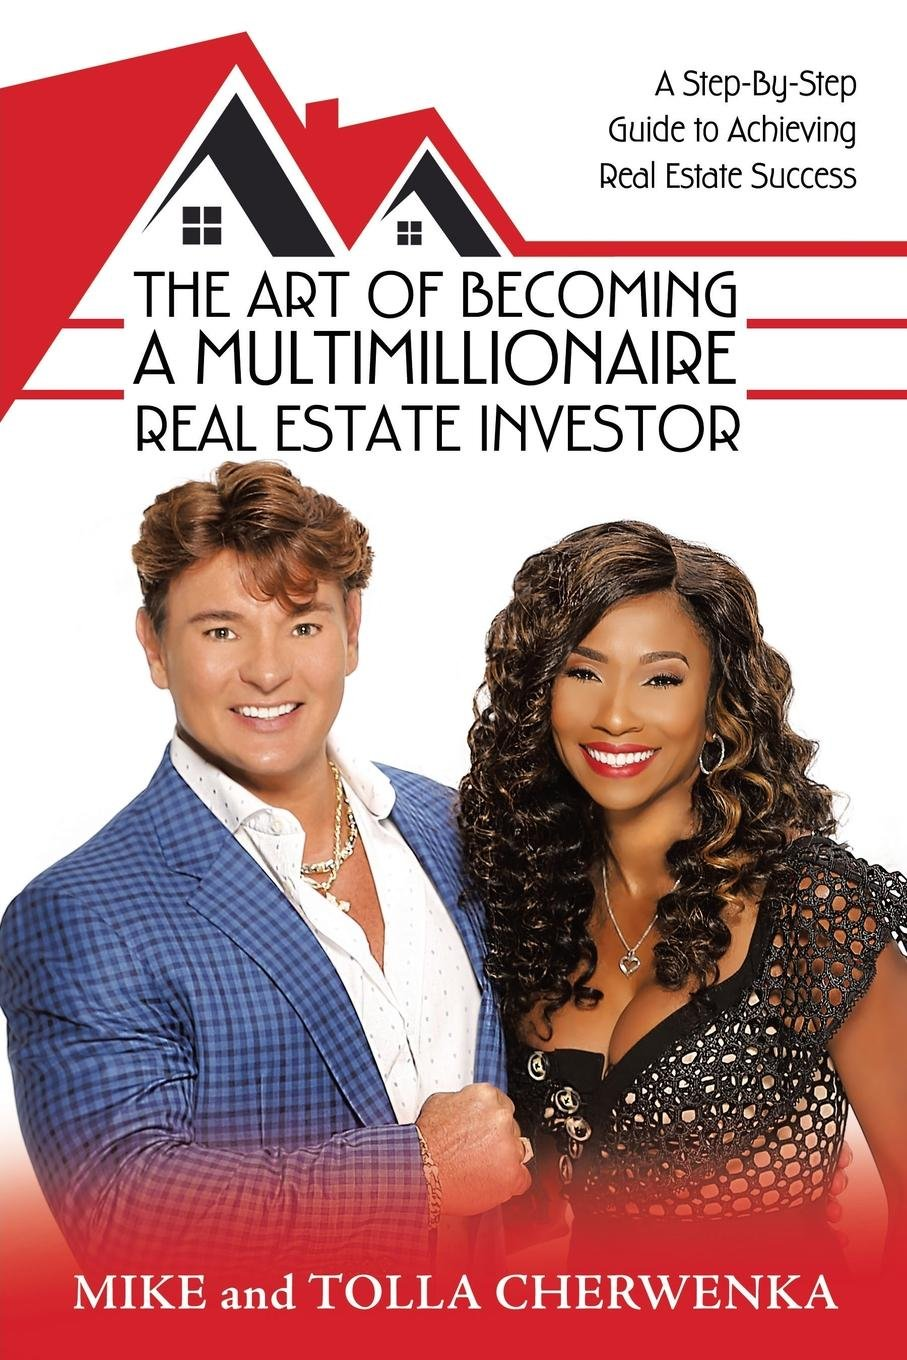 The Art of Becoming a Multimillionaire Real Estate Investor: A Step-By-Step Guide to Achieving Real Estate Success ebook